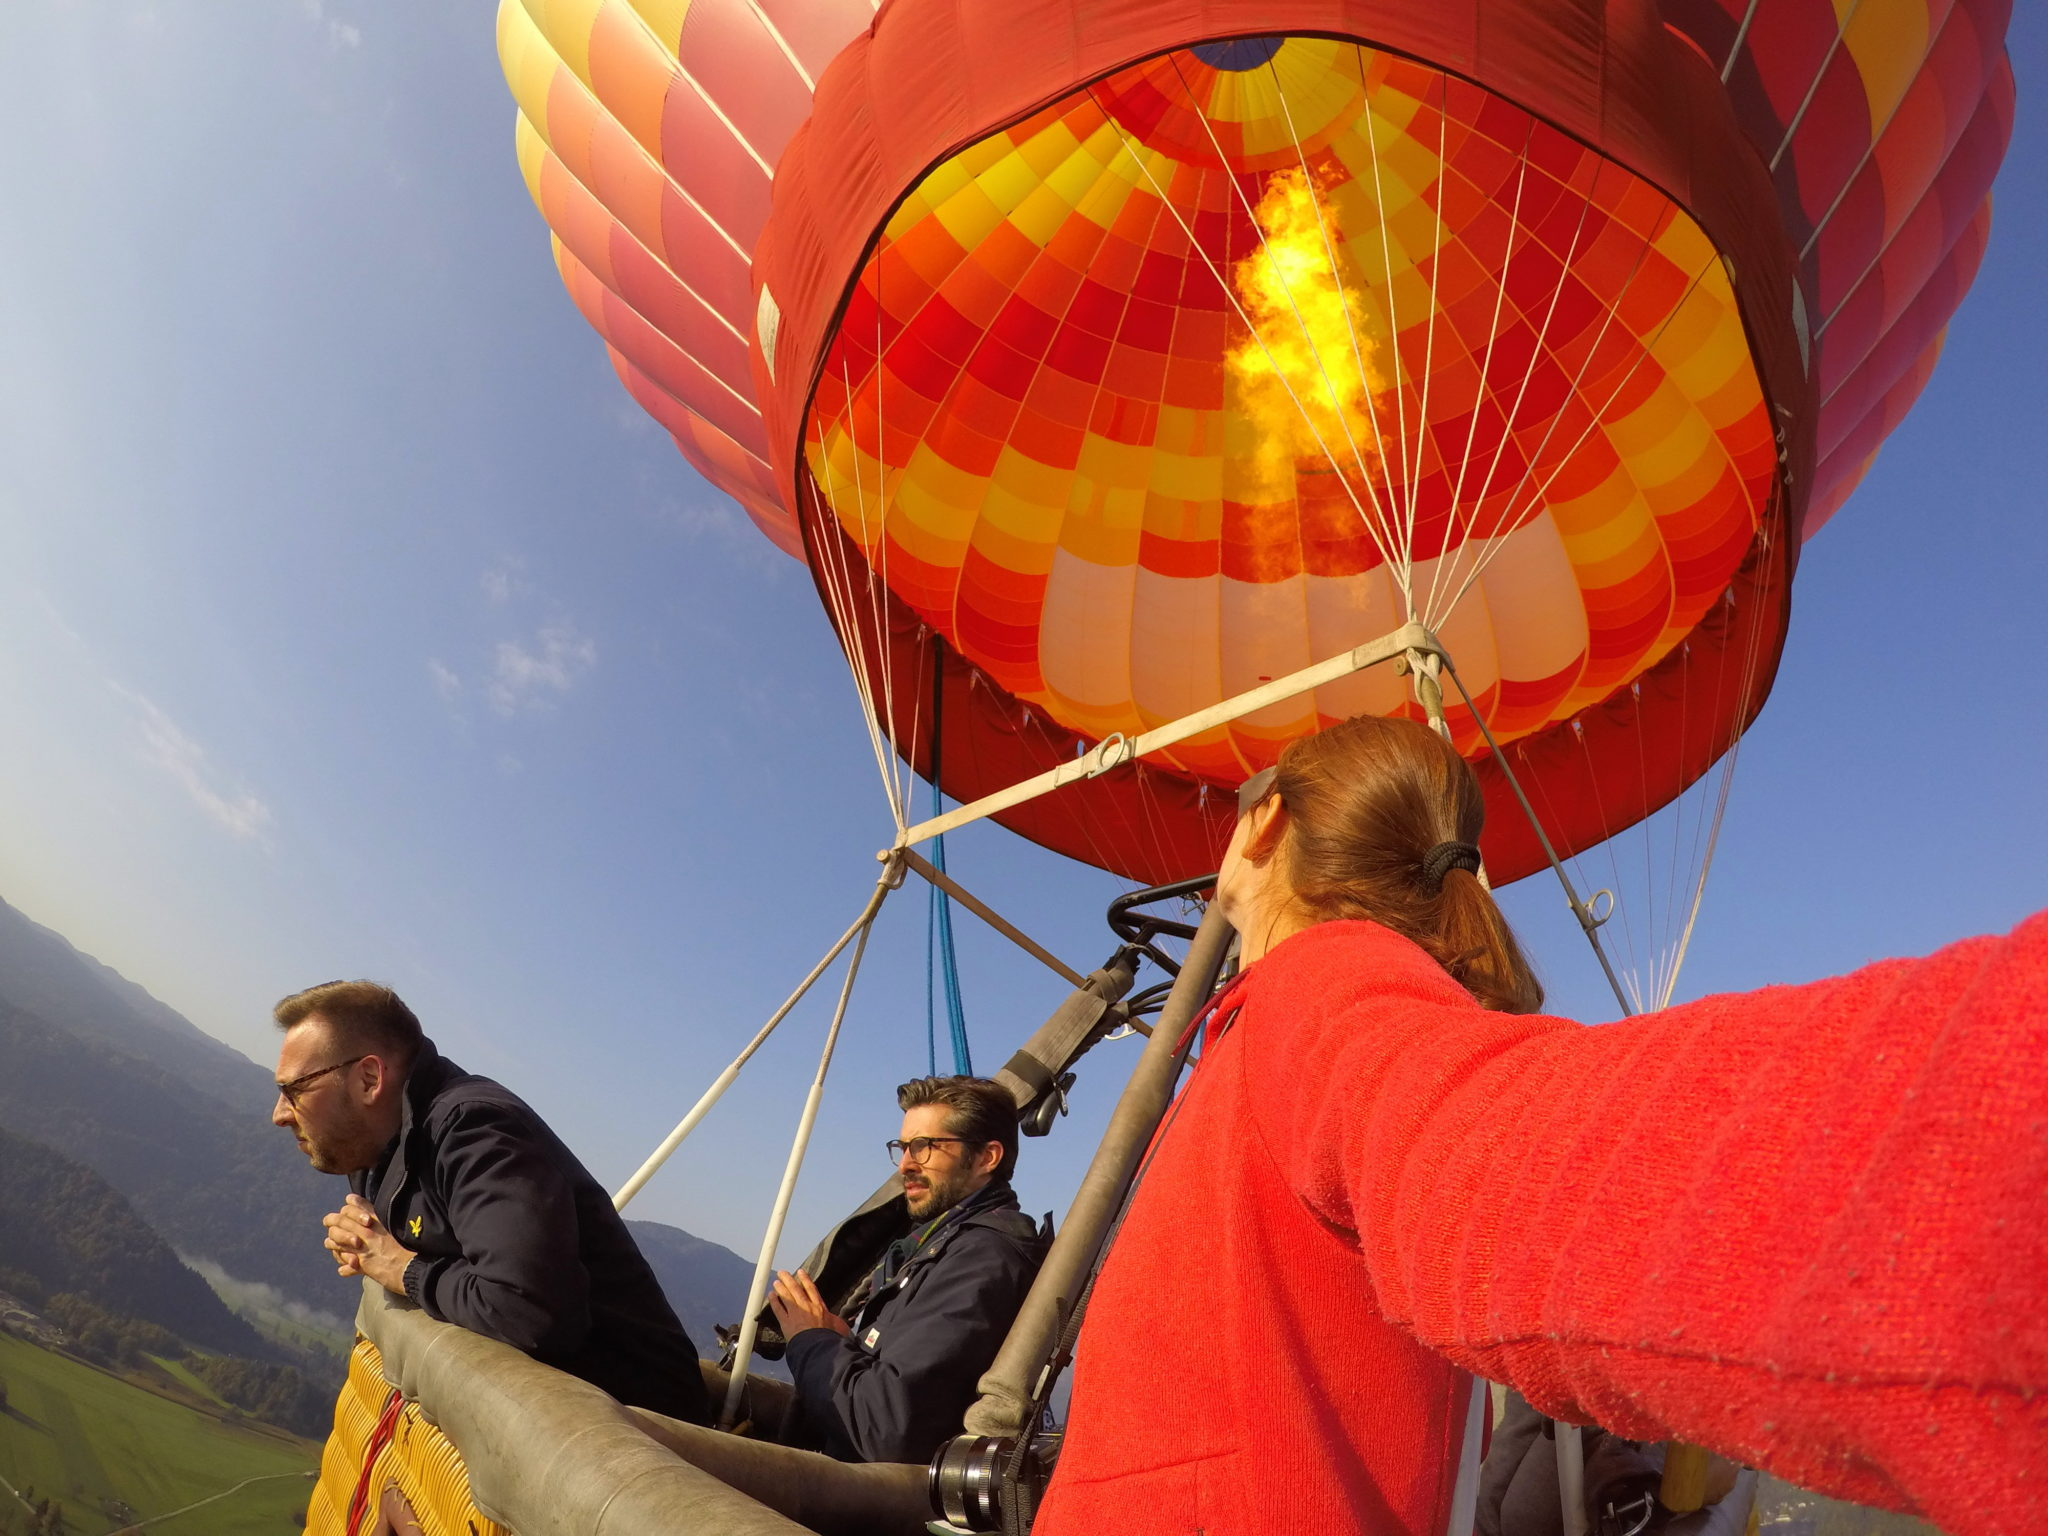 In a hot air balloon